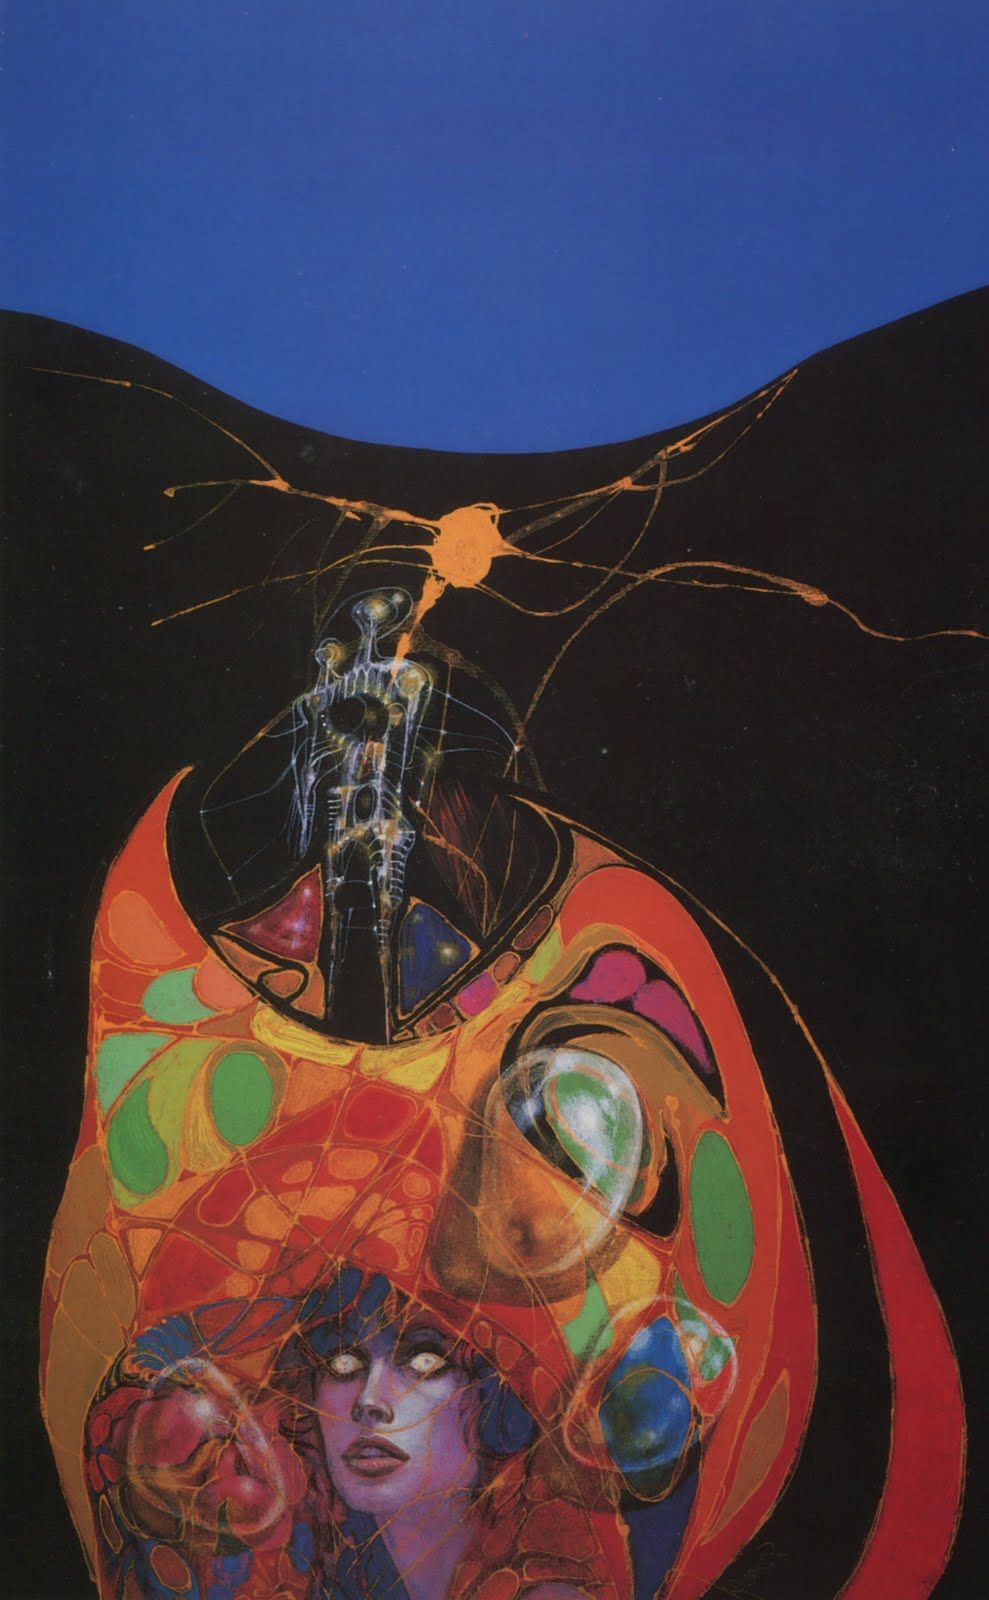 Cover story: Surrealism of Richard Powers Picketing Books 24